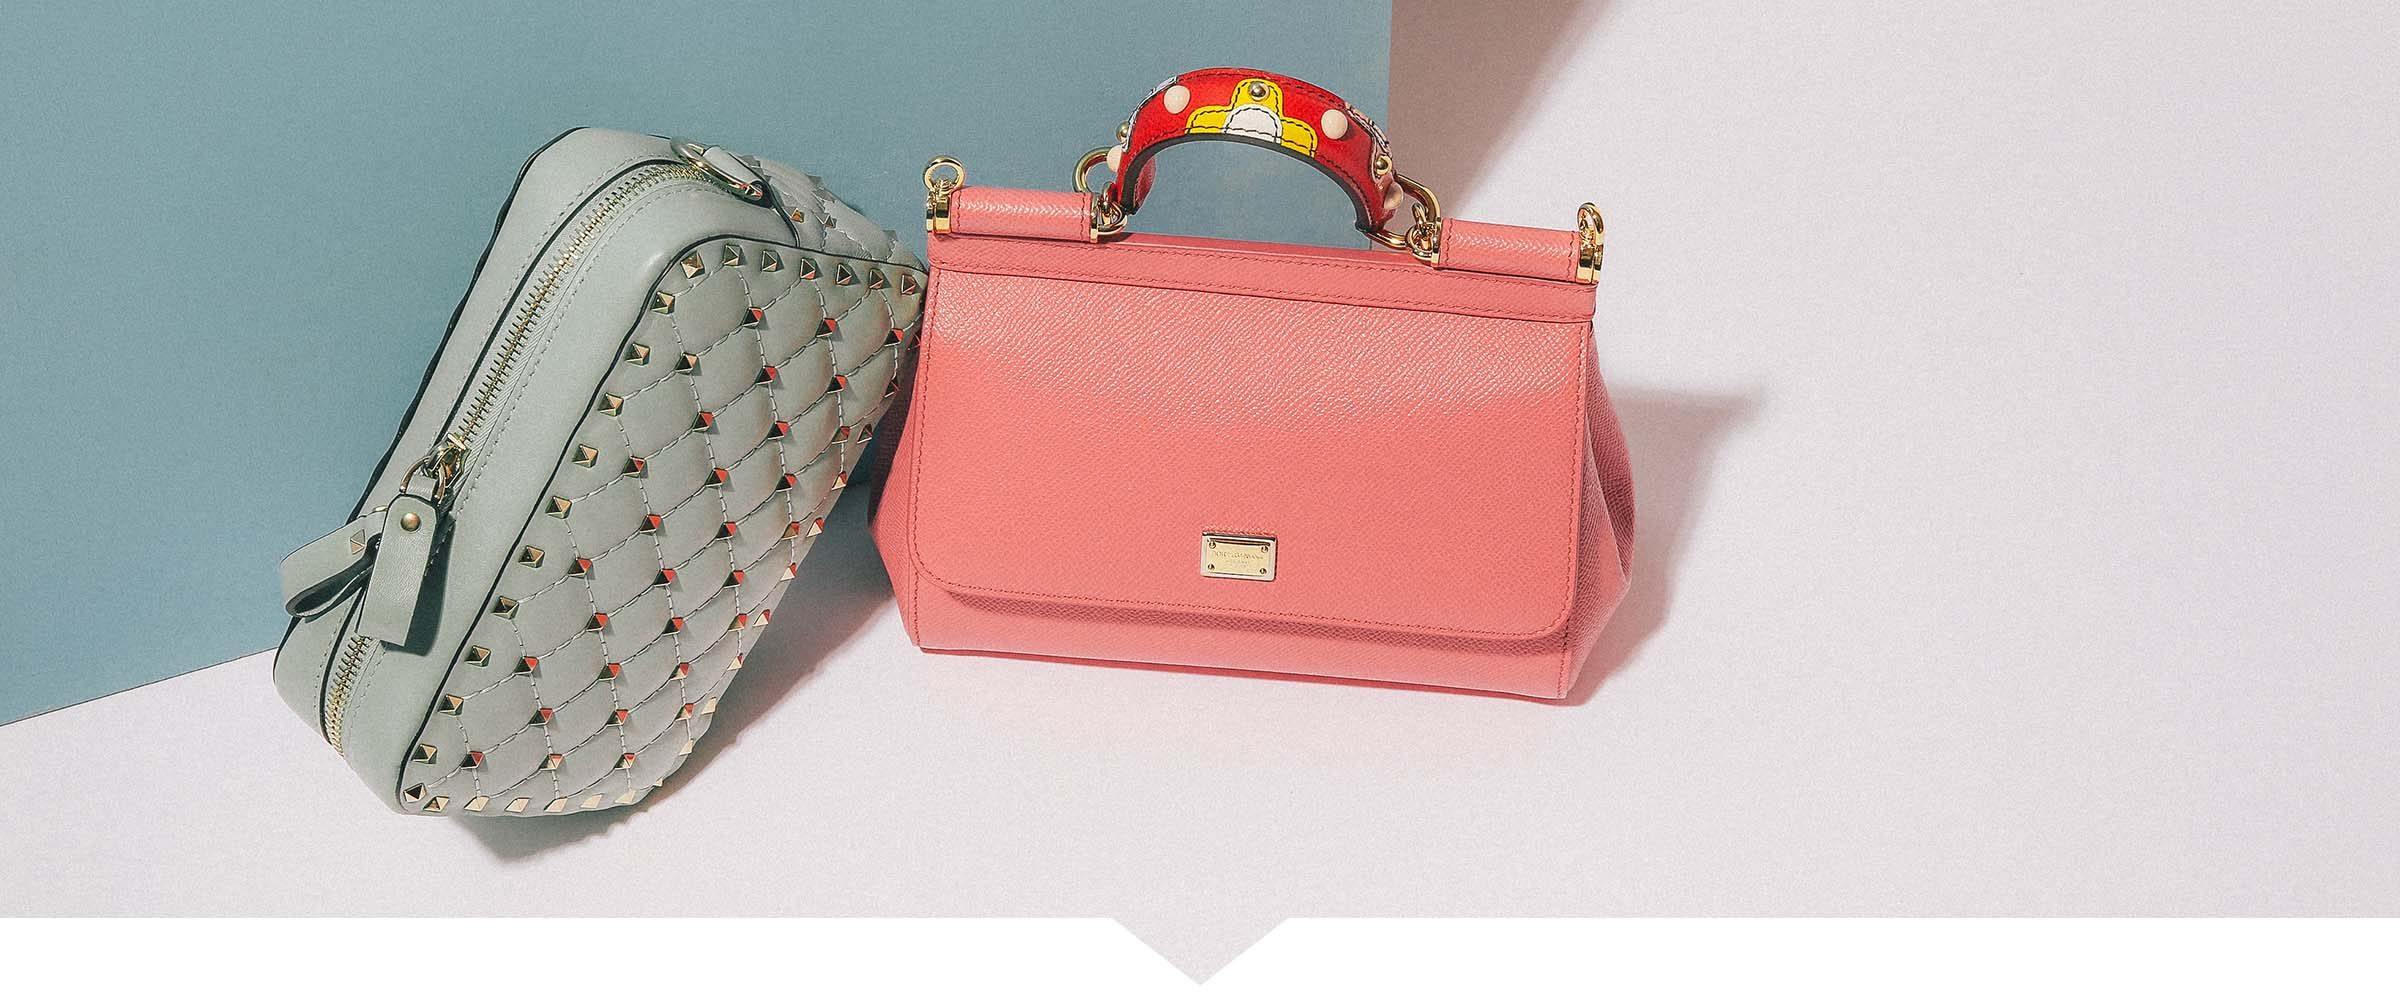 The Wishlist: The Mini Bags Edit